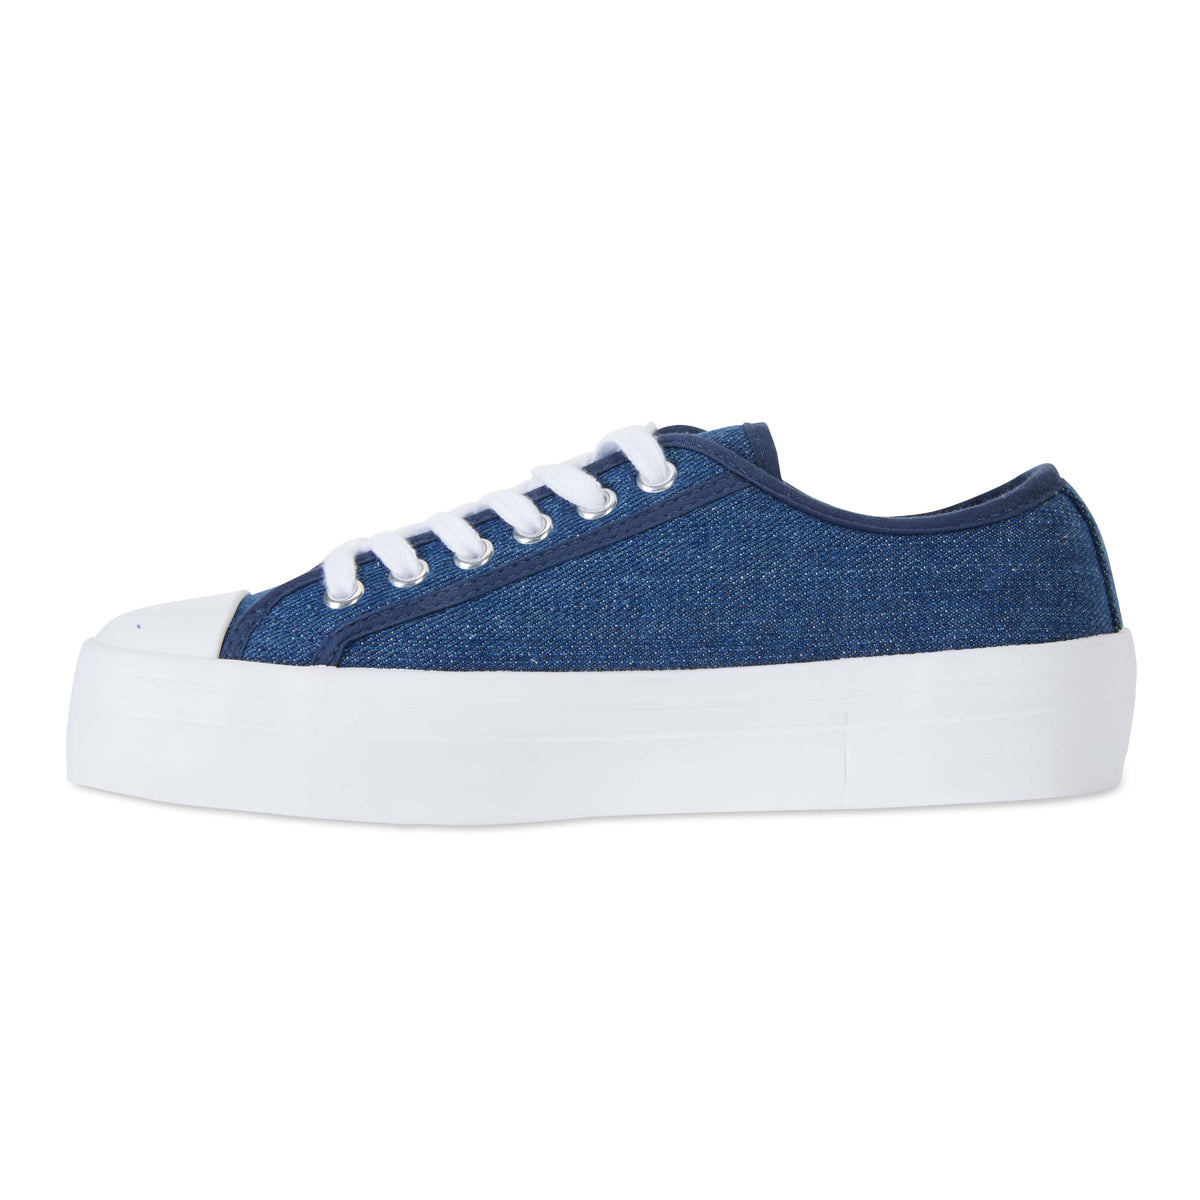 Stacey Sneaker in Denim Canvas